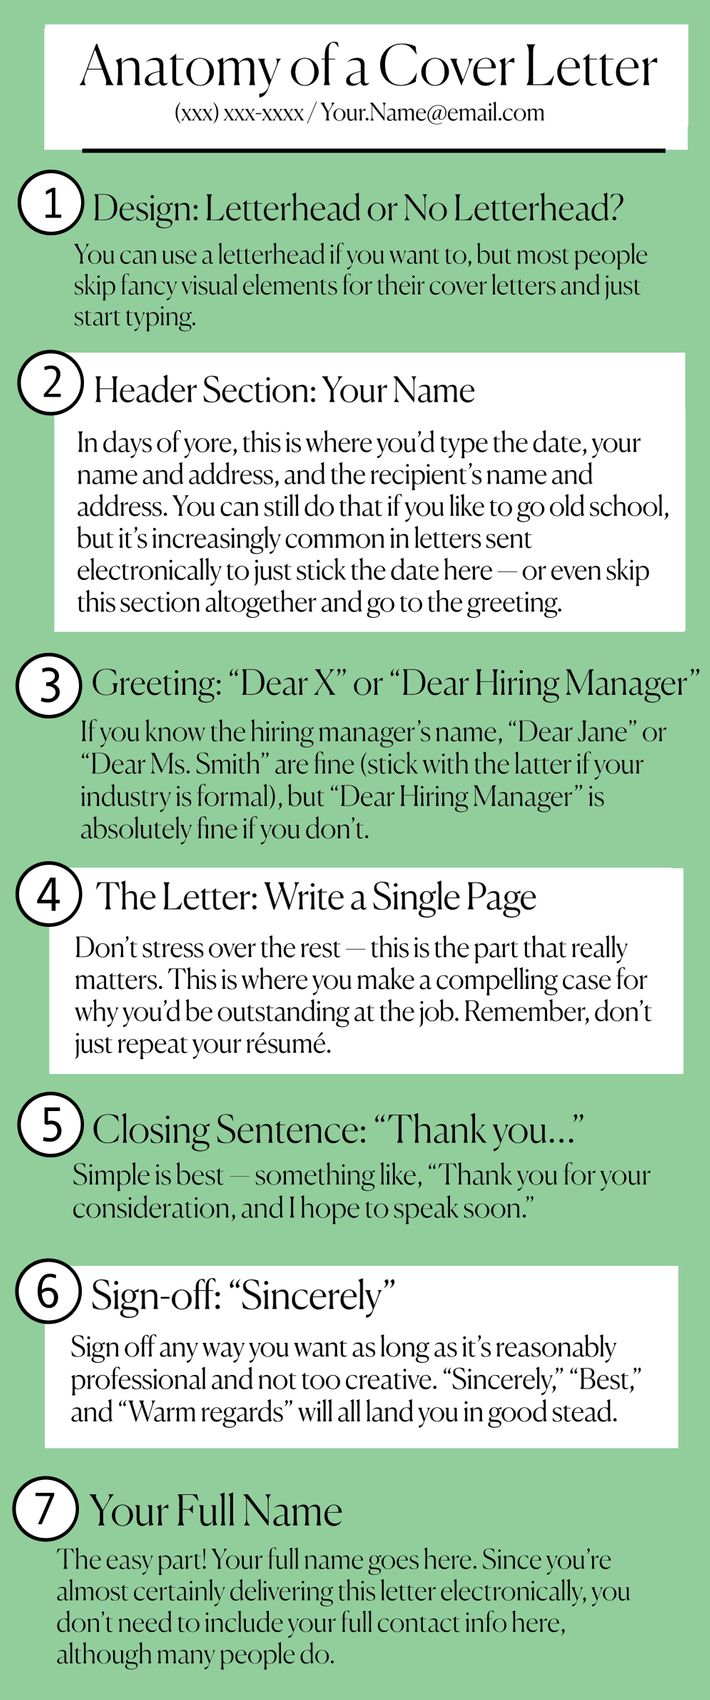 tips for writing cover letters effectively.html